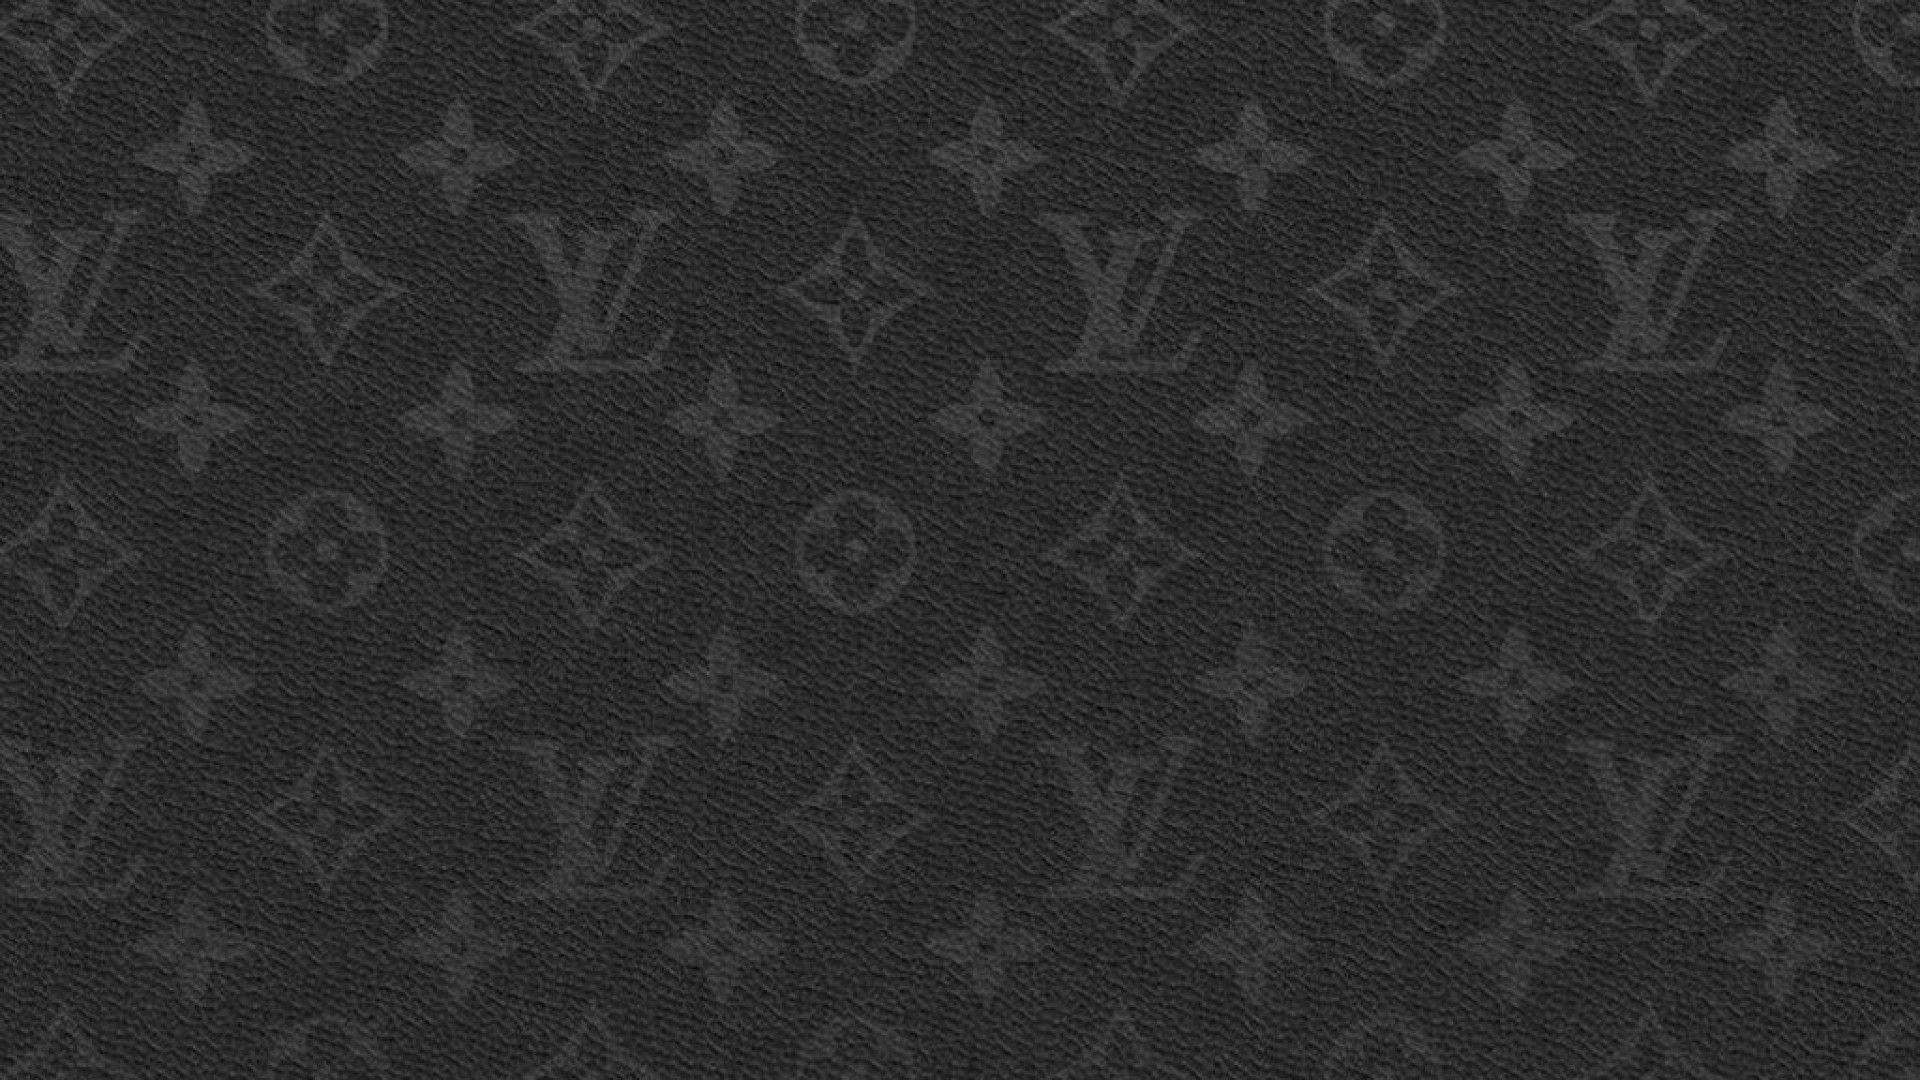 Black Louis Vuitton Wallpaper